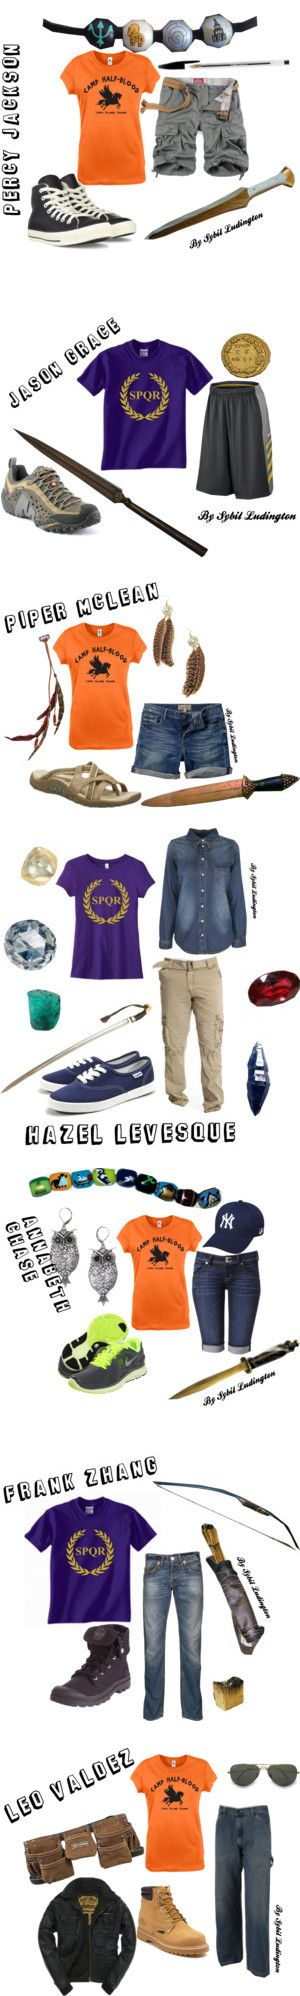 """Heroes Of Olympus"" by merahzinnia on Polyvore"